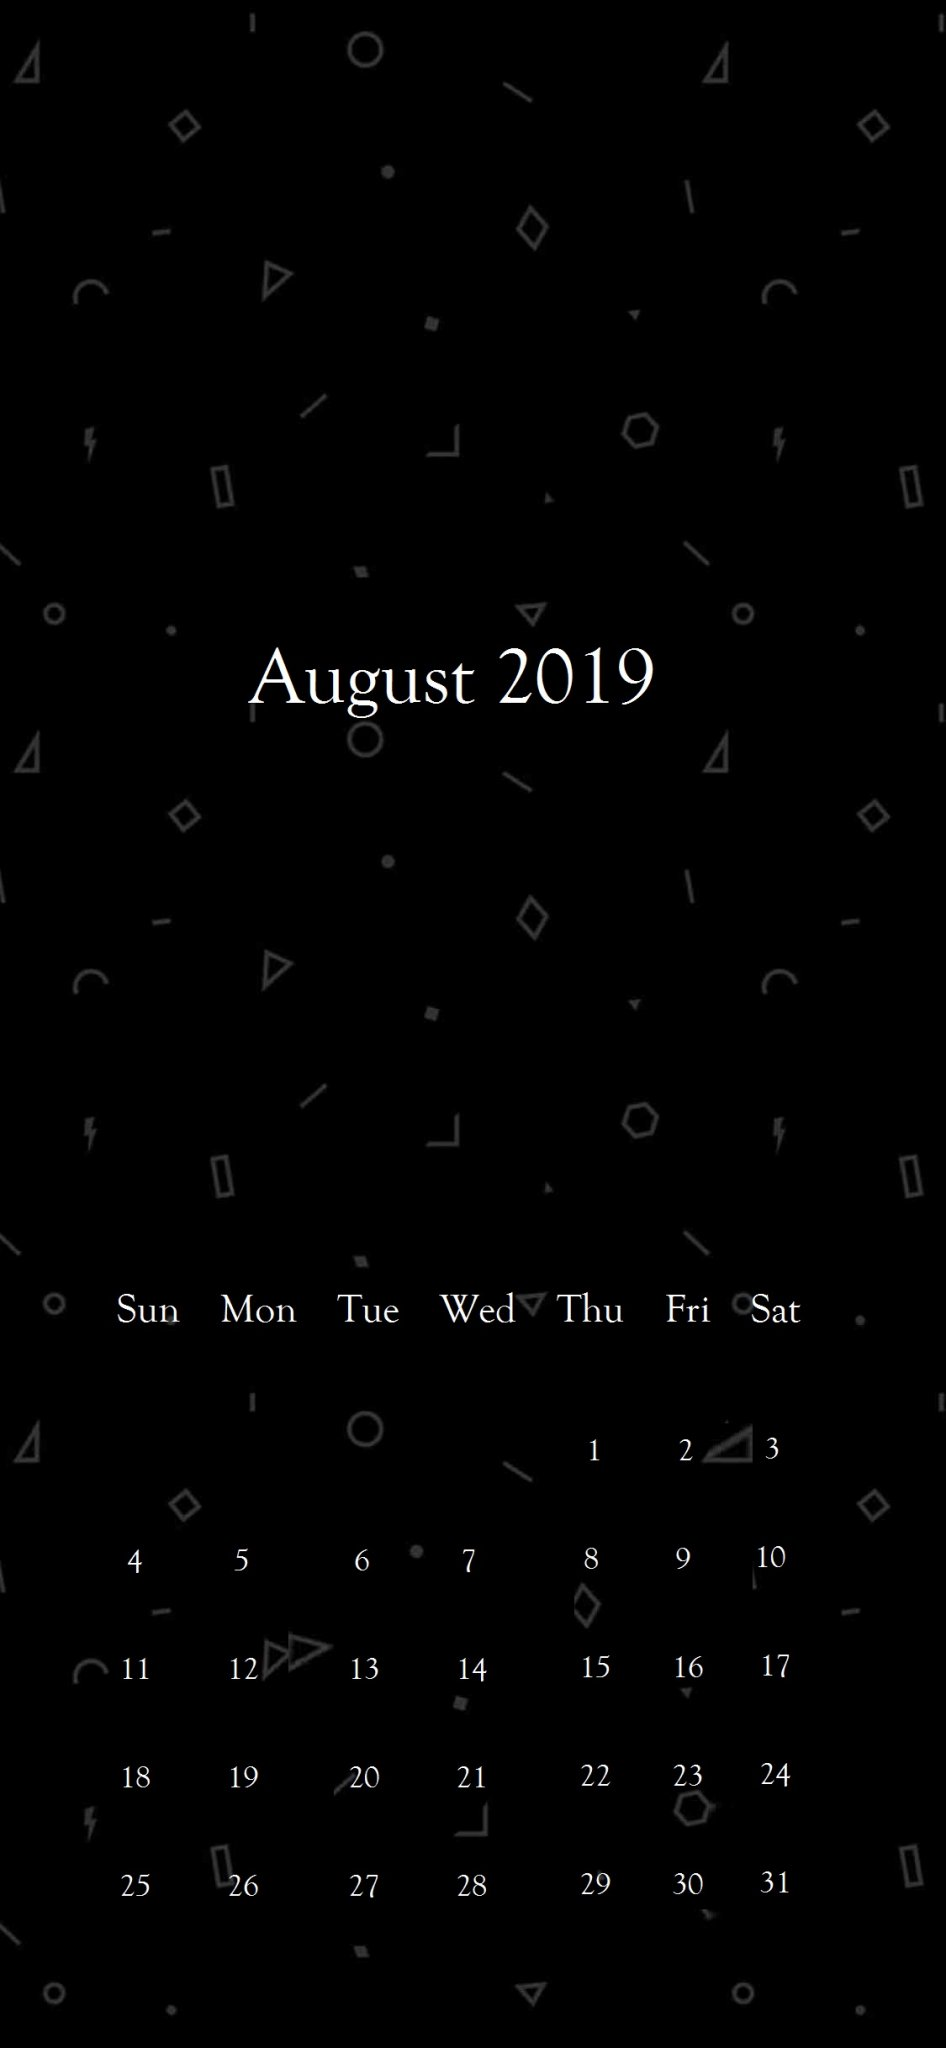 Black Background August 2019 iPhone Wallpaper